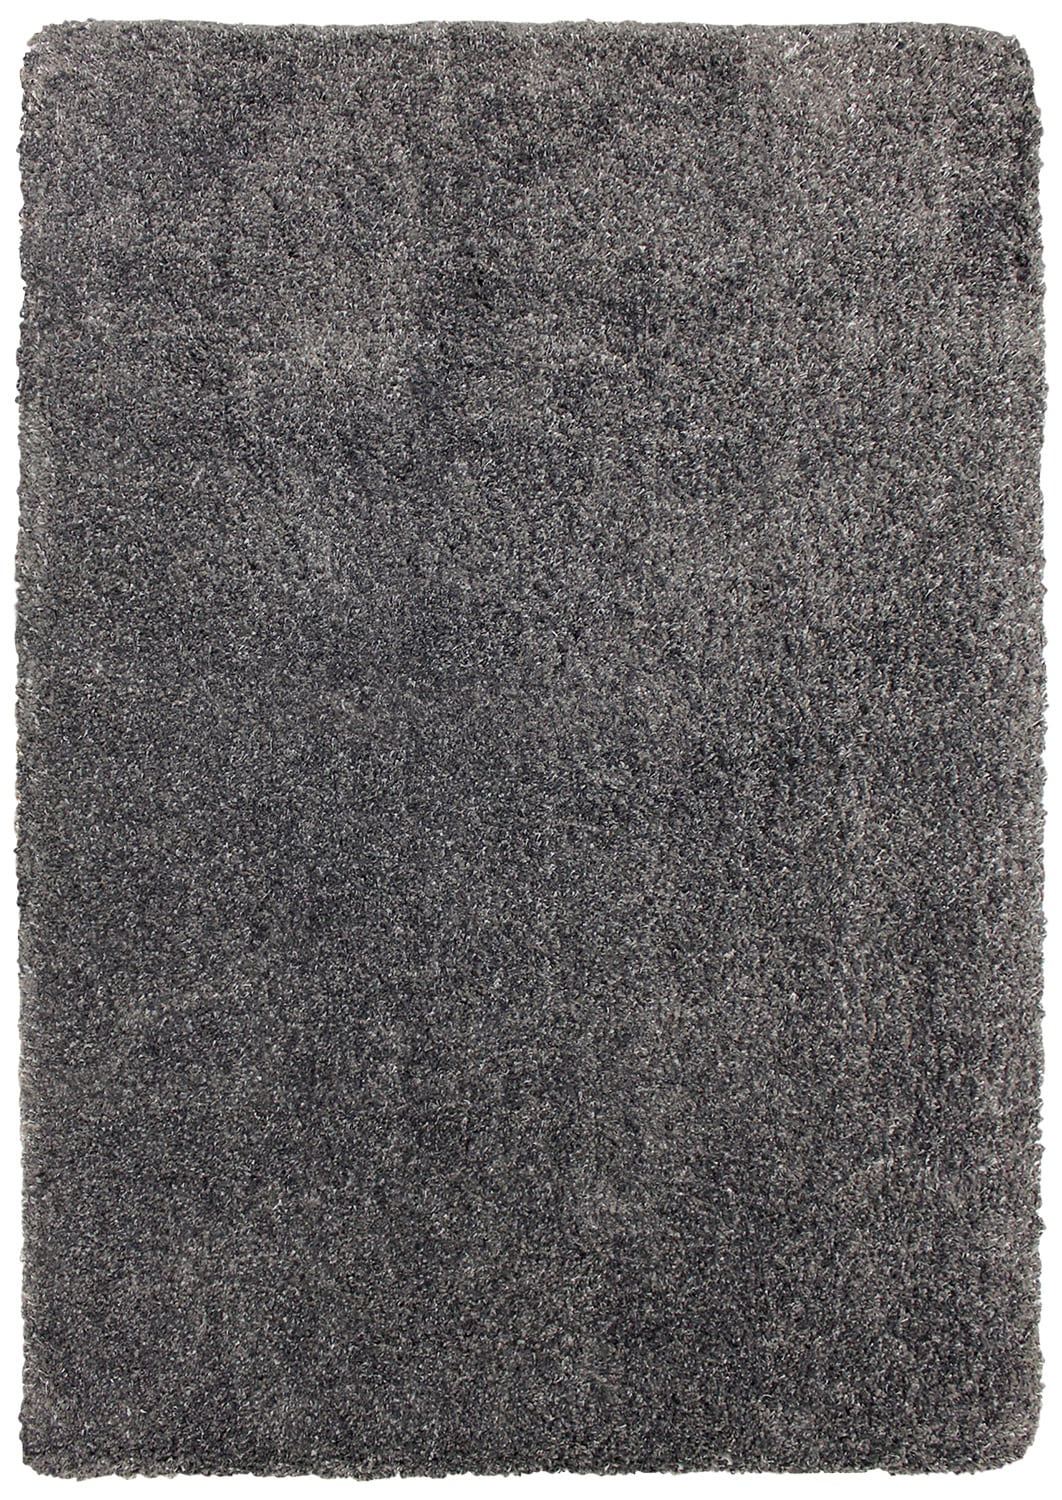 Rugs - Loft Charcoal Grey Shag Area Rug – 7' x 10'